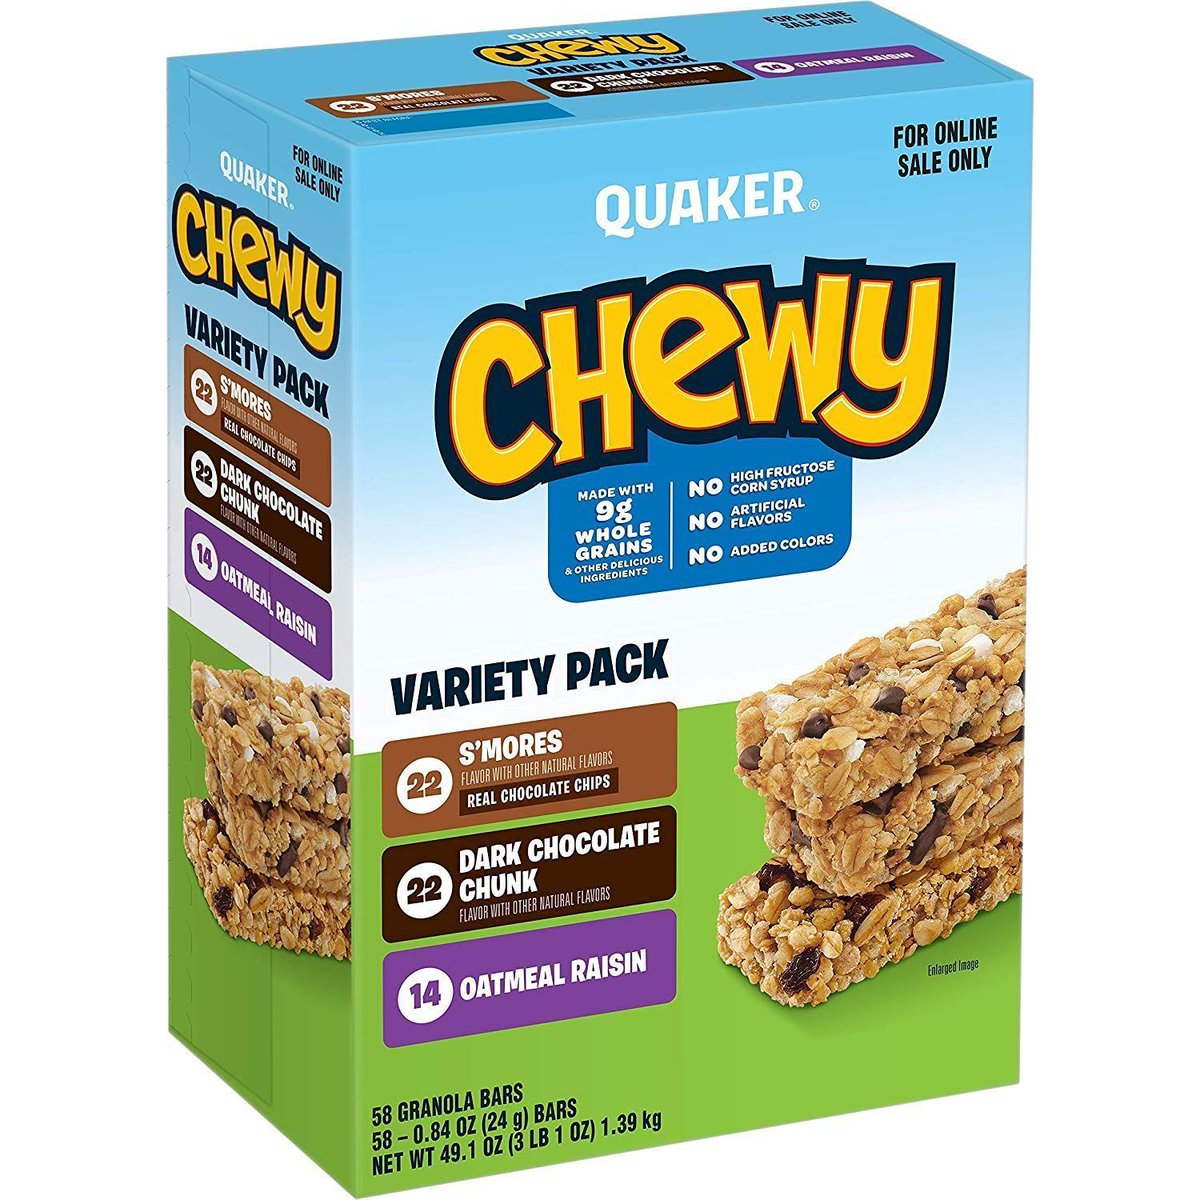 Over 3 pounds of Chewy Bars, as low as $6.32! amzn.to/2HGH5GH